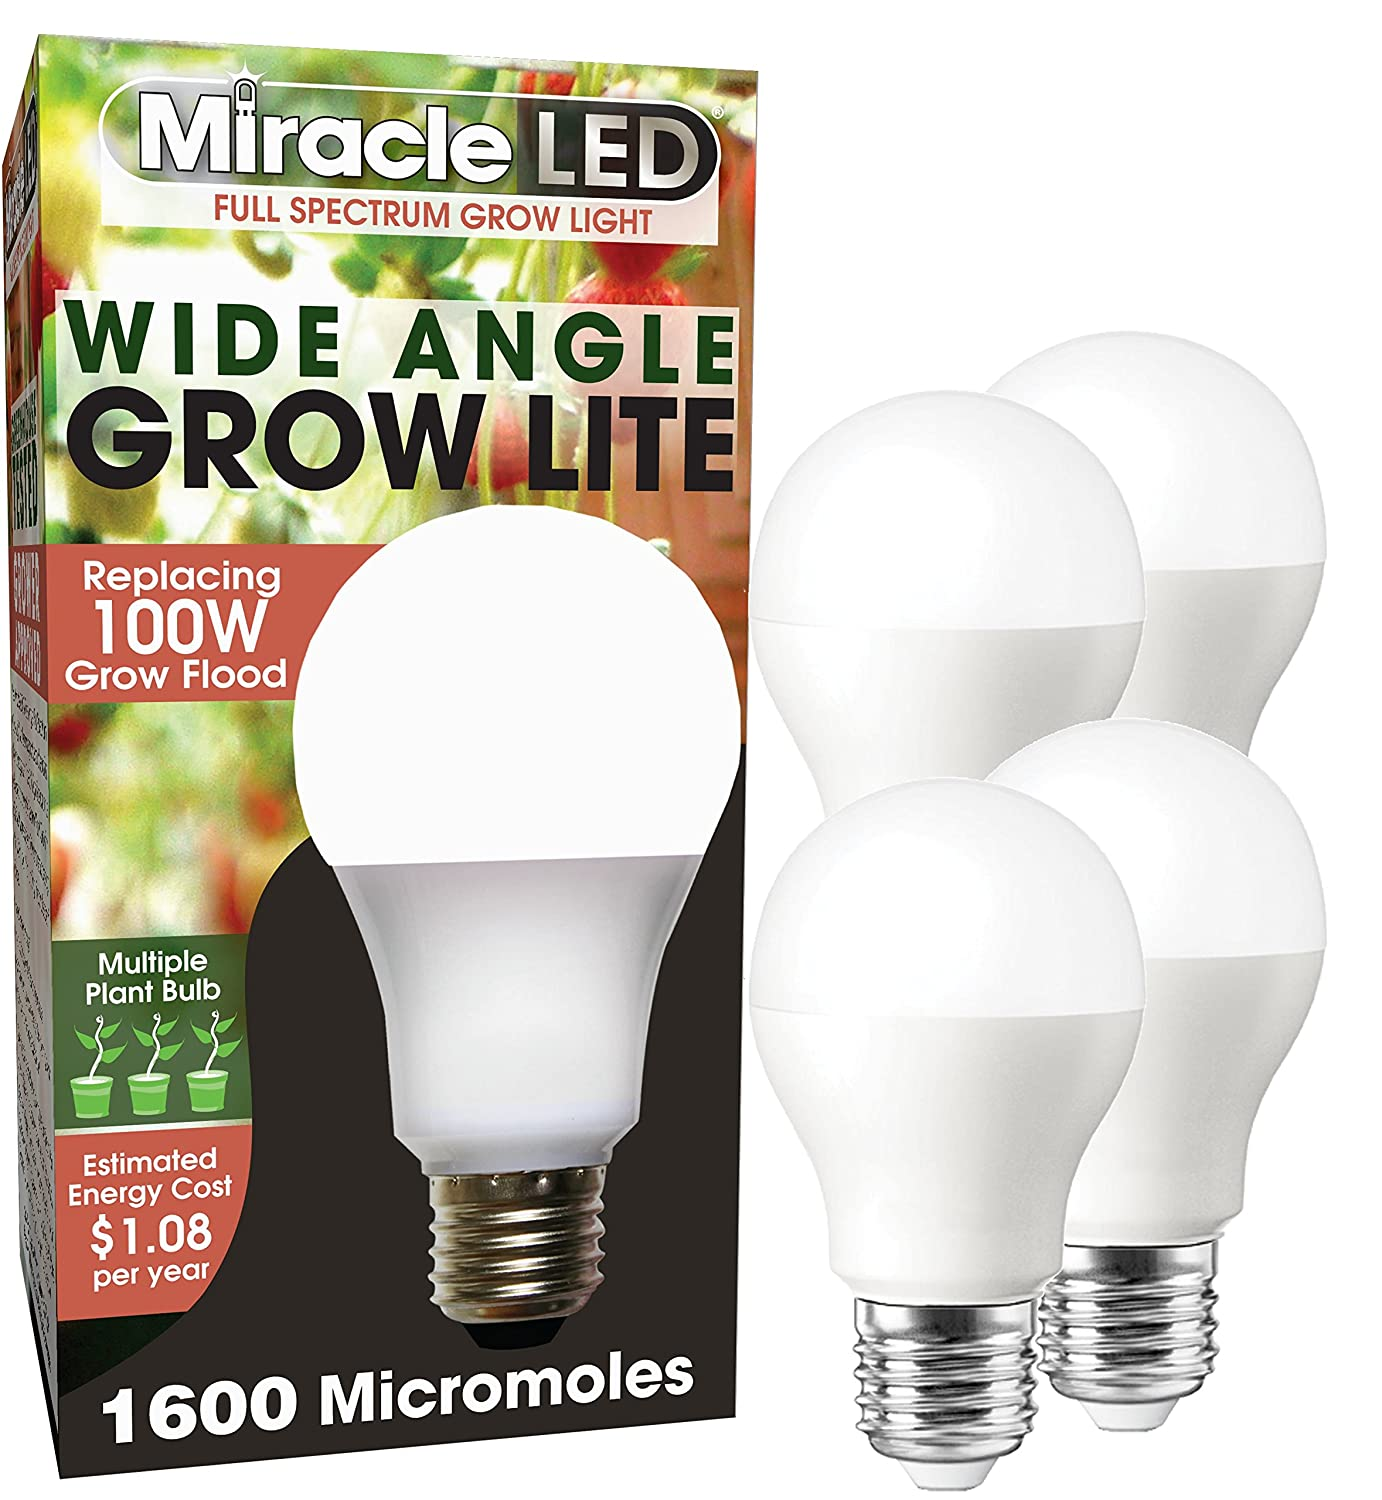 Daylight MiracleLED 604594 Wide Angle LED Full Spectrum Grow Light Replaces 150W with 1900 Micromoles